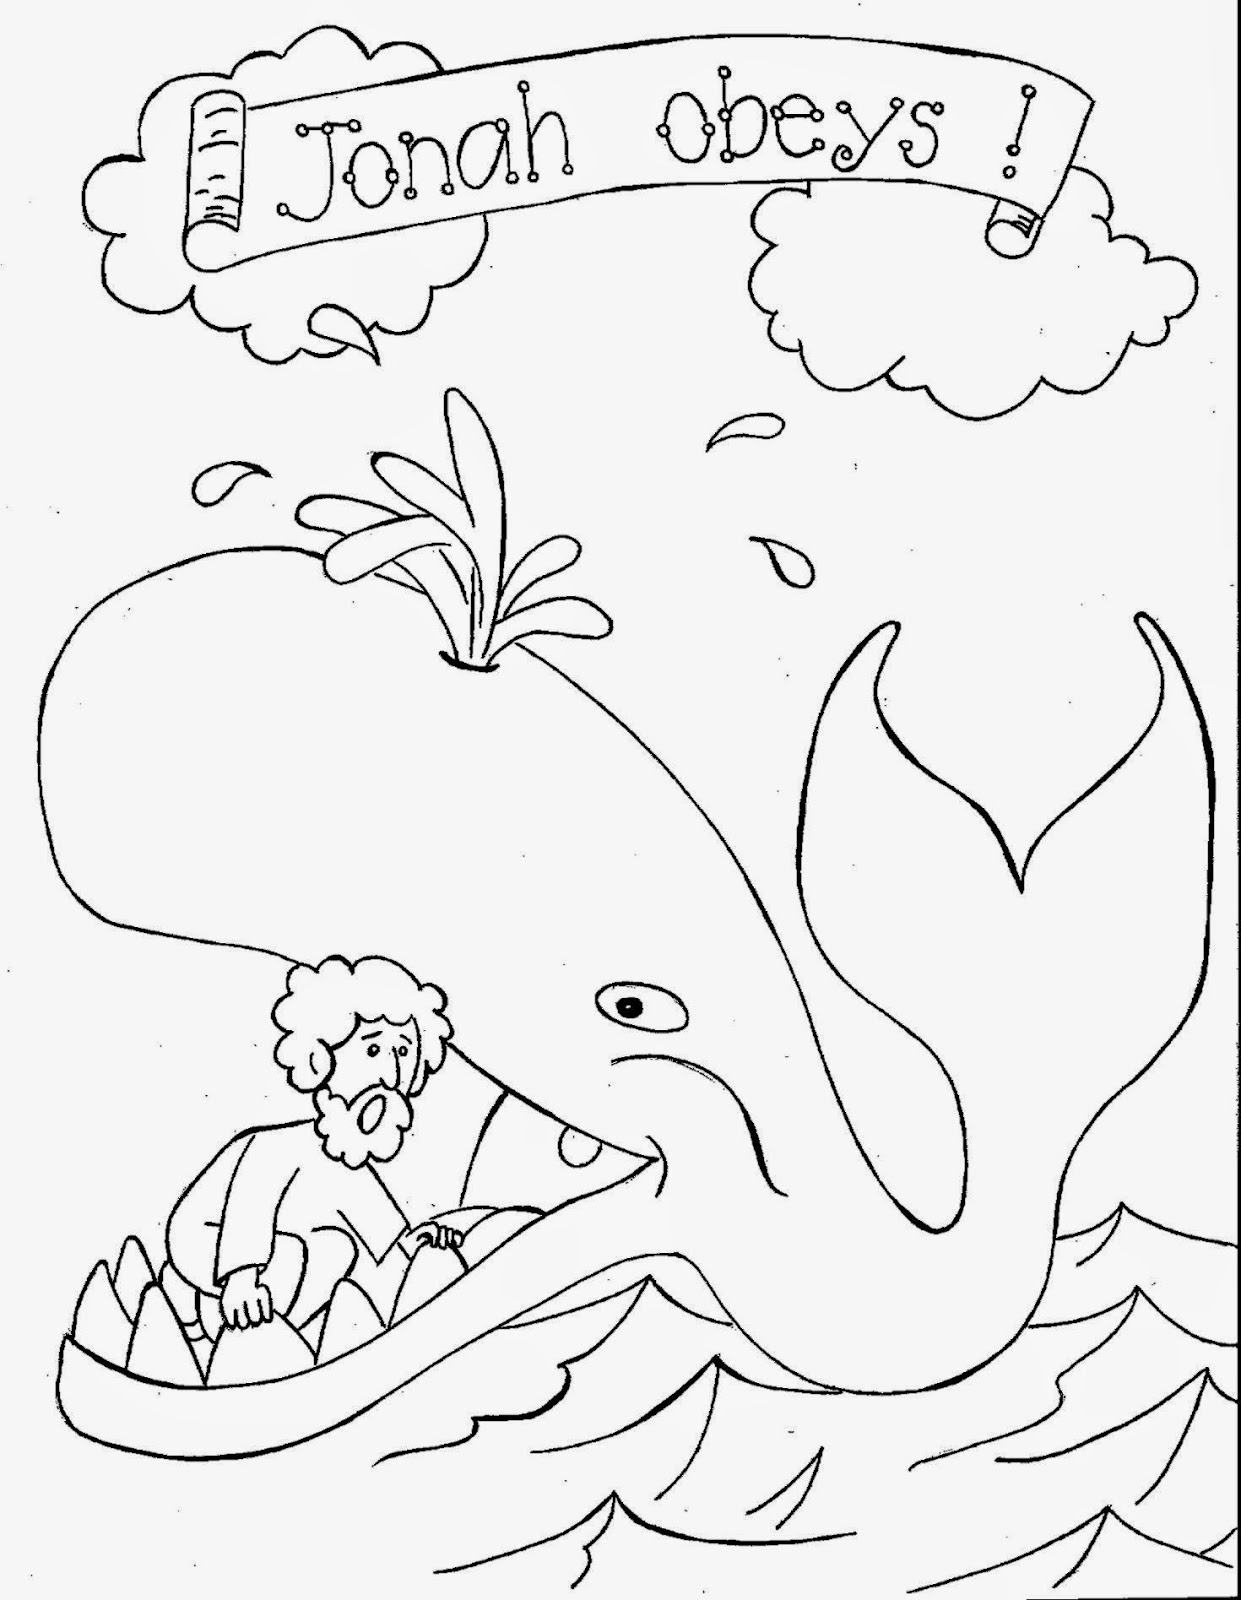 Bible With Coloring Pages at GetDrawings.com   Free for personal use ...